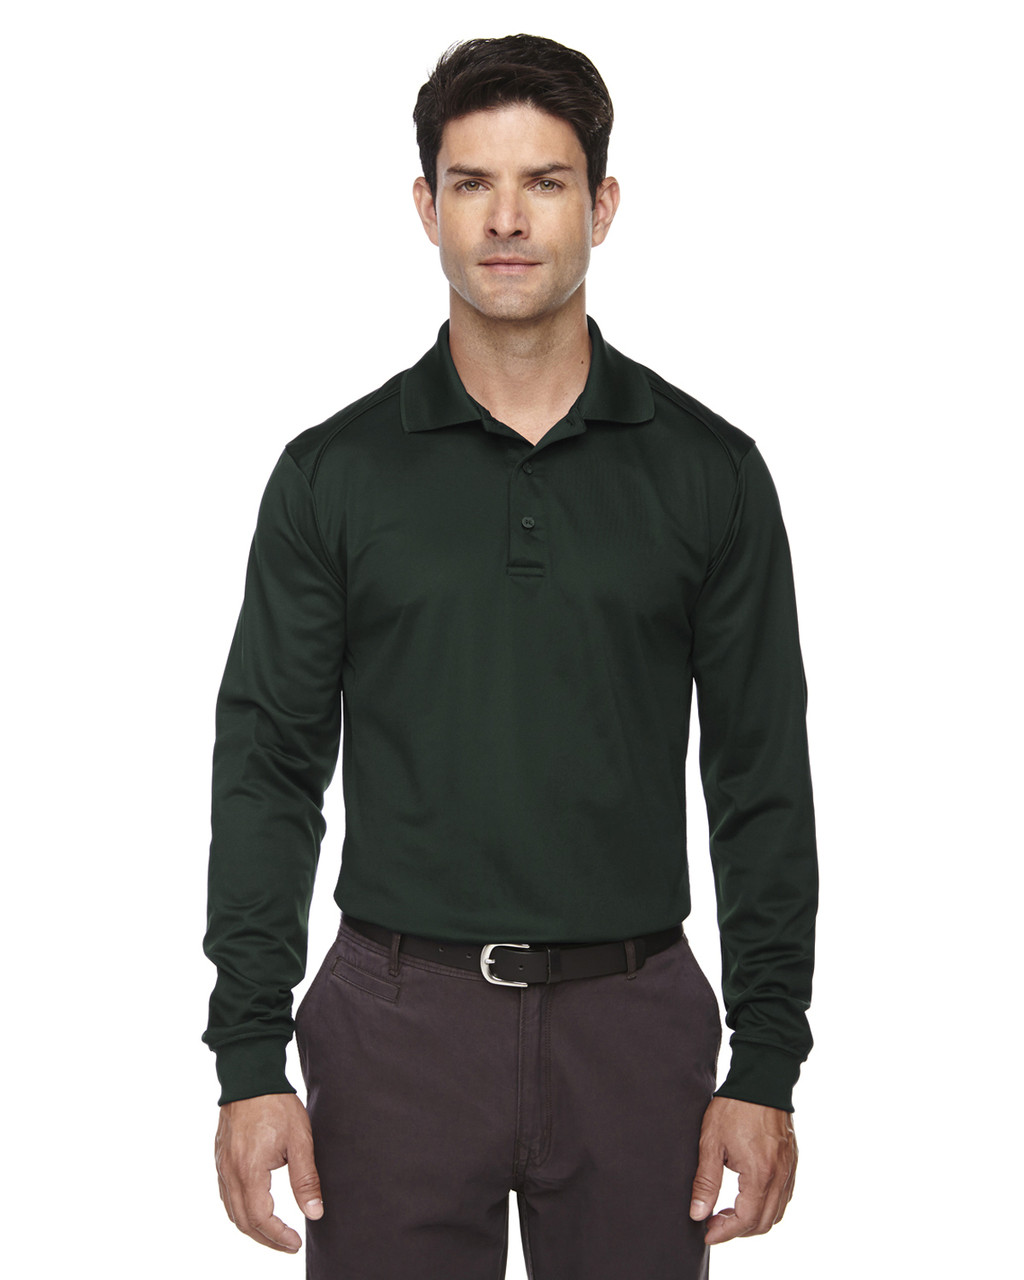 Forest Green - 85111 Ash City - Extreme Eperformance Men's Long-Sleeve Polo Shirt